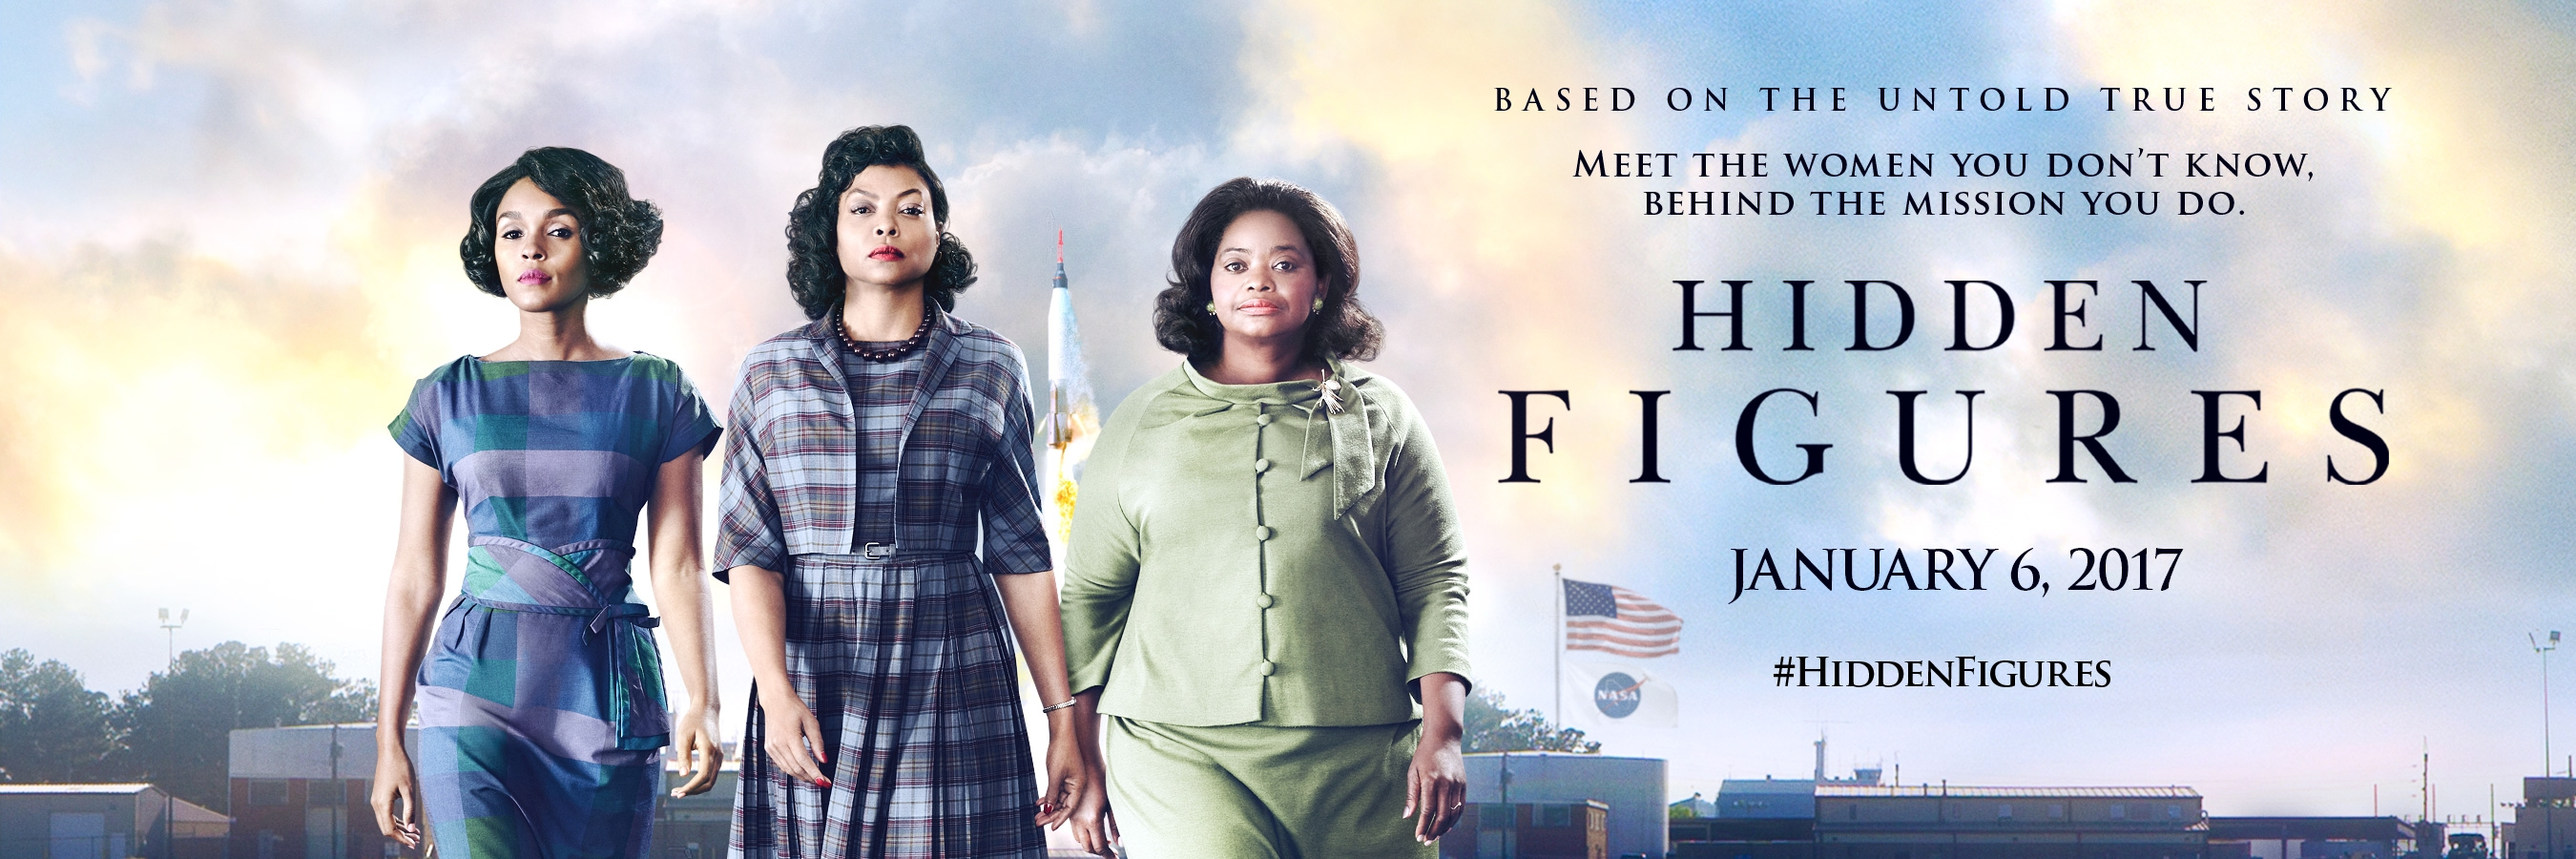 Hidden Figures – An Untold Story Worth Celebrating